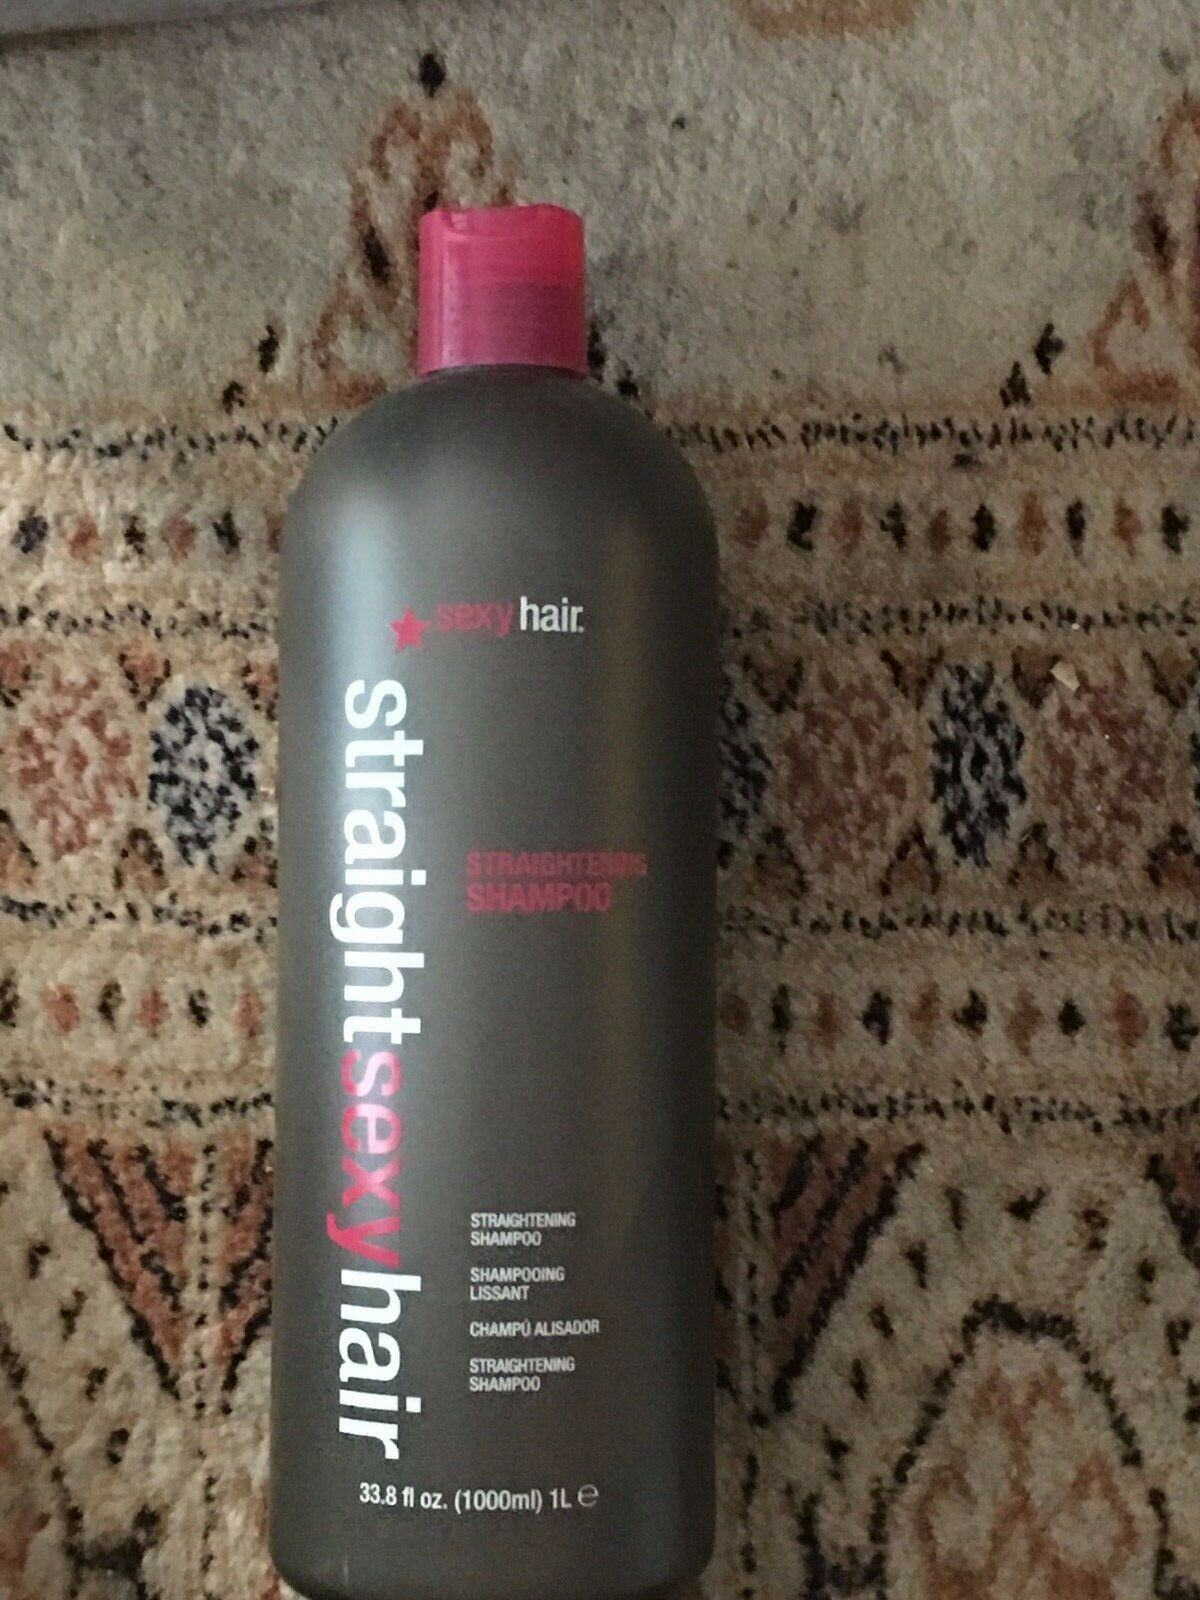 Primary image for Sexy Hair Straight Sexy Hair Straightening Shampoo 33.8 oz